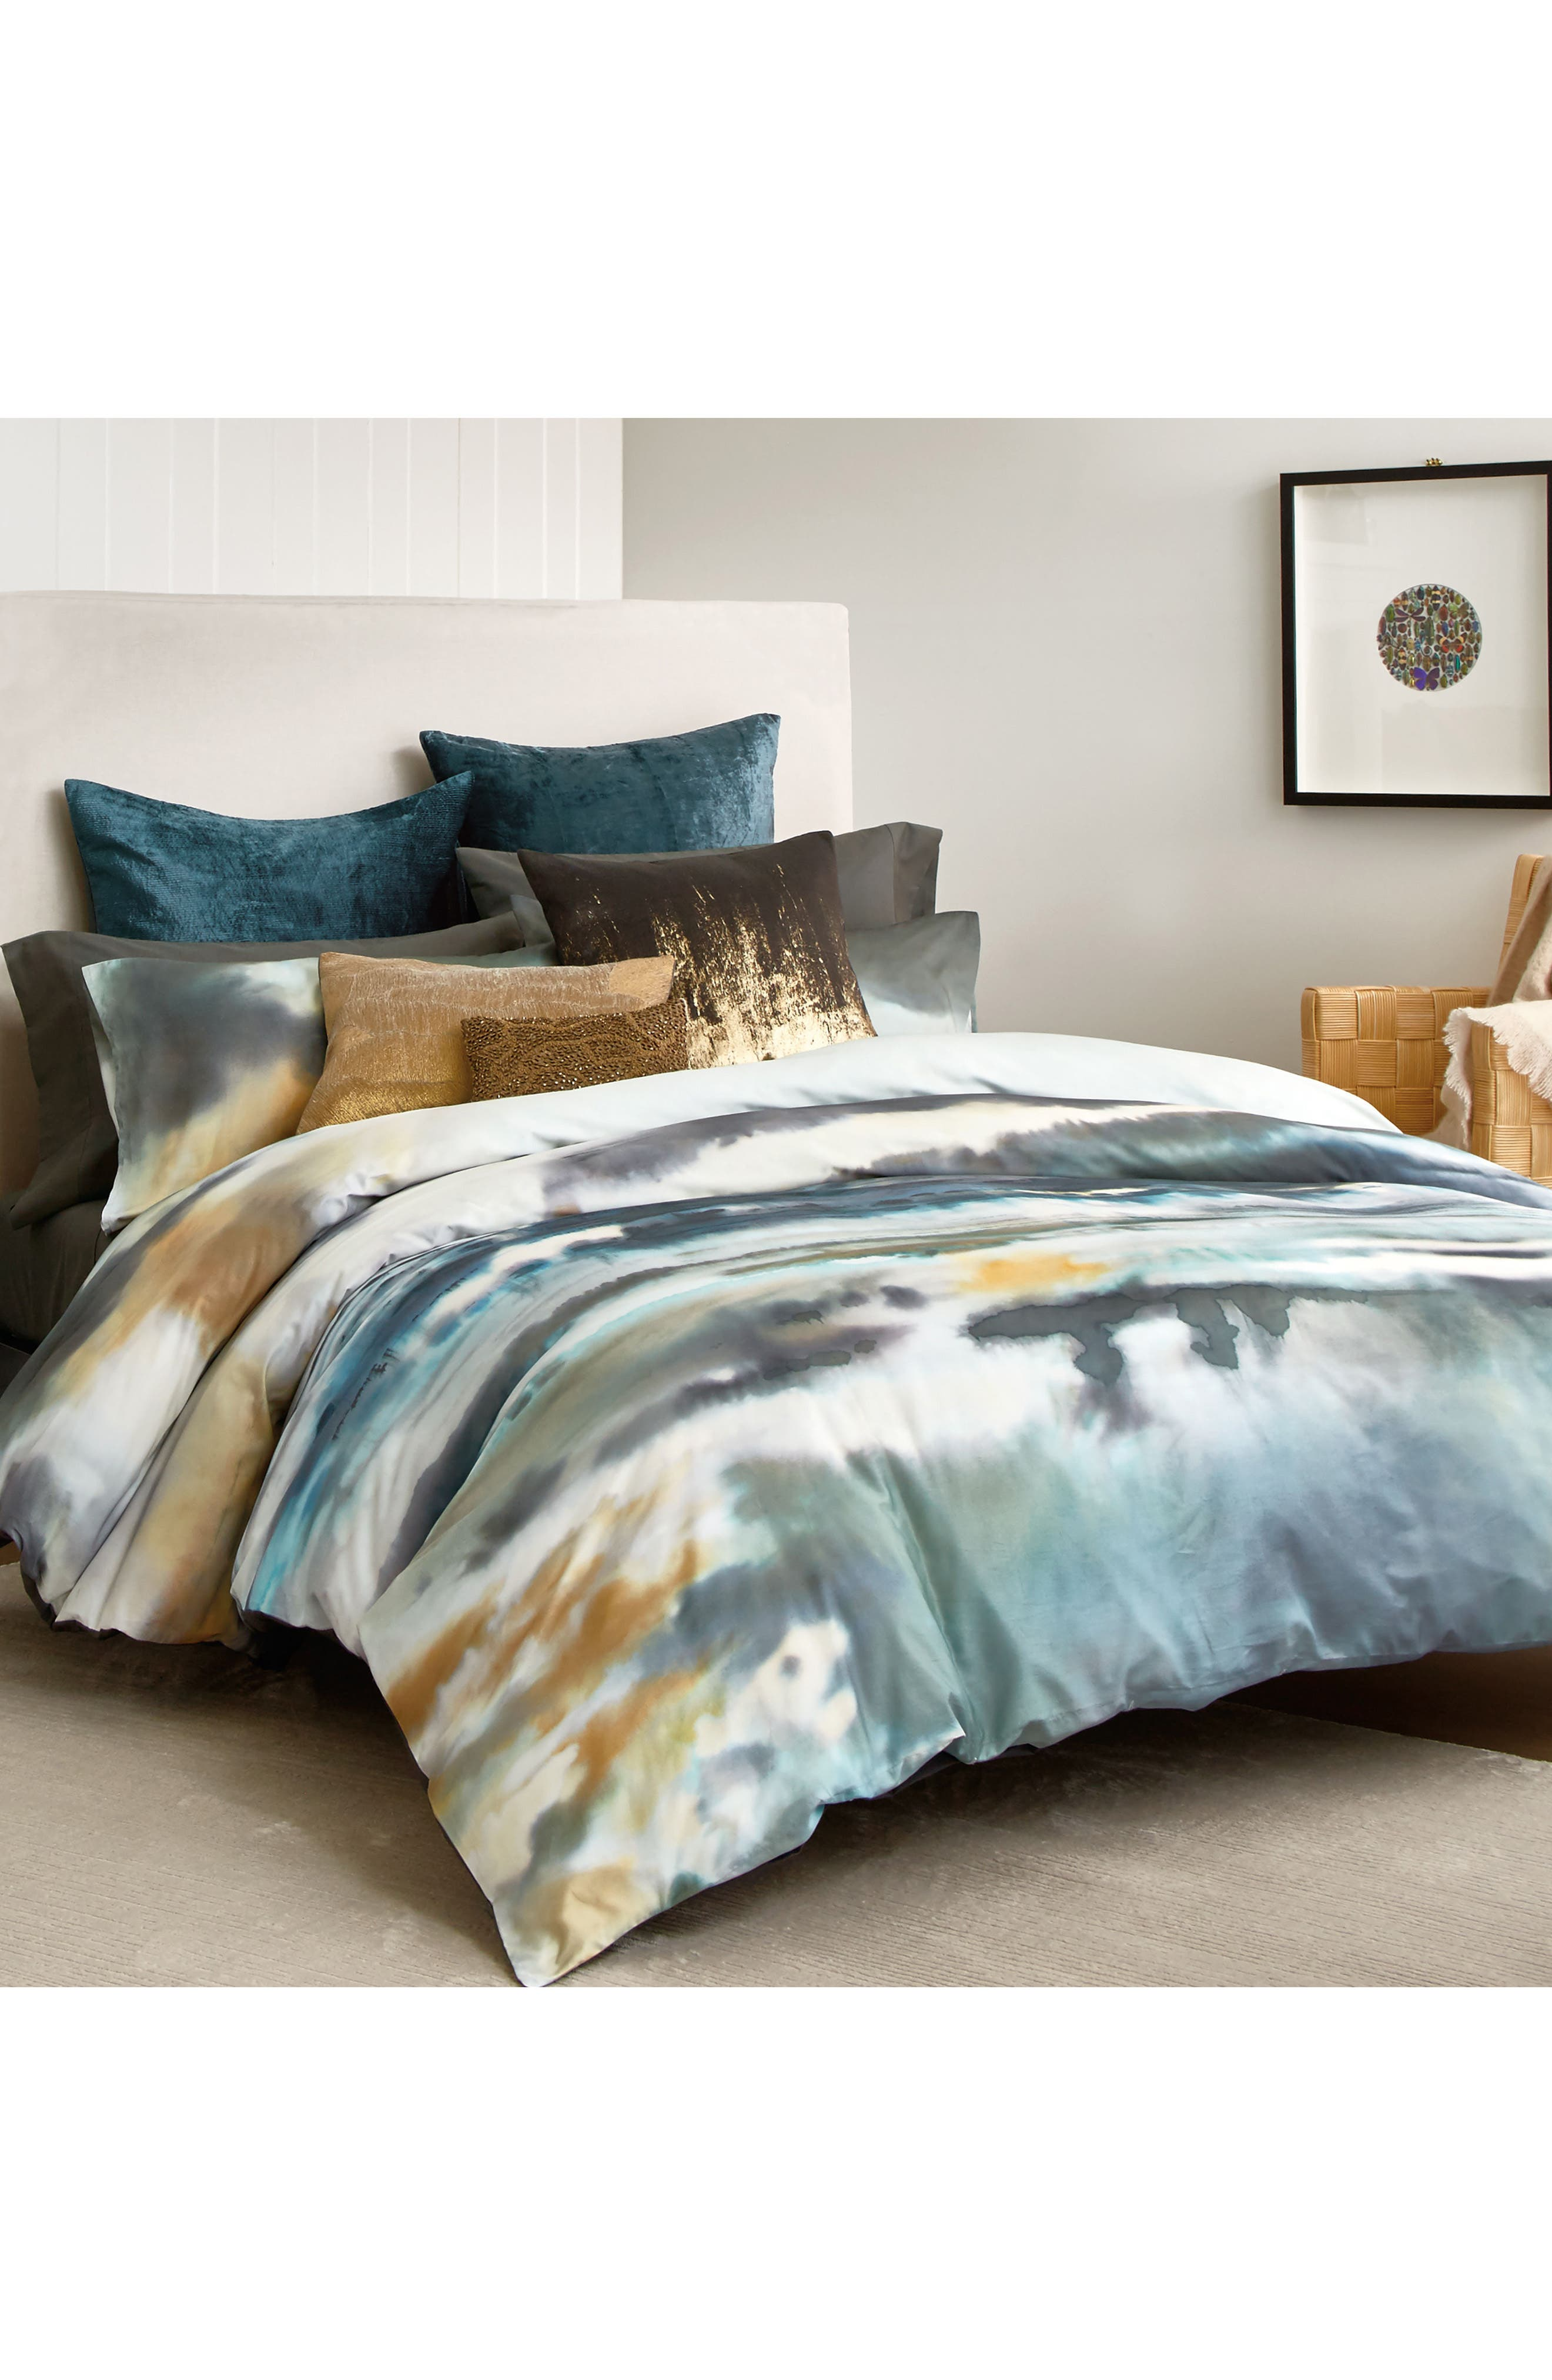 Michael Aram After The Storm Duvet Cover